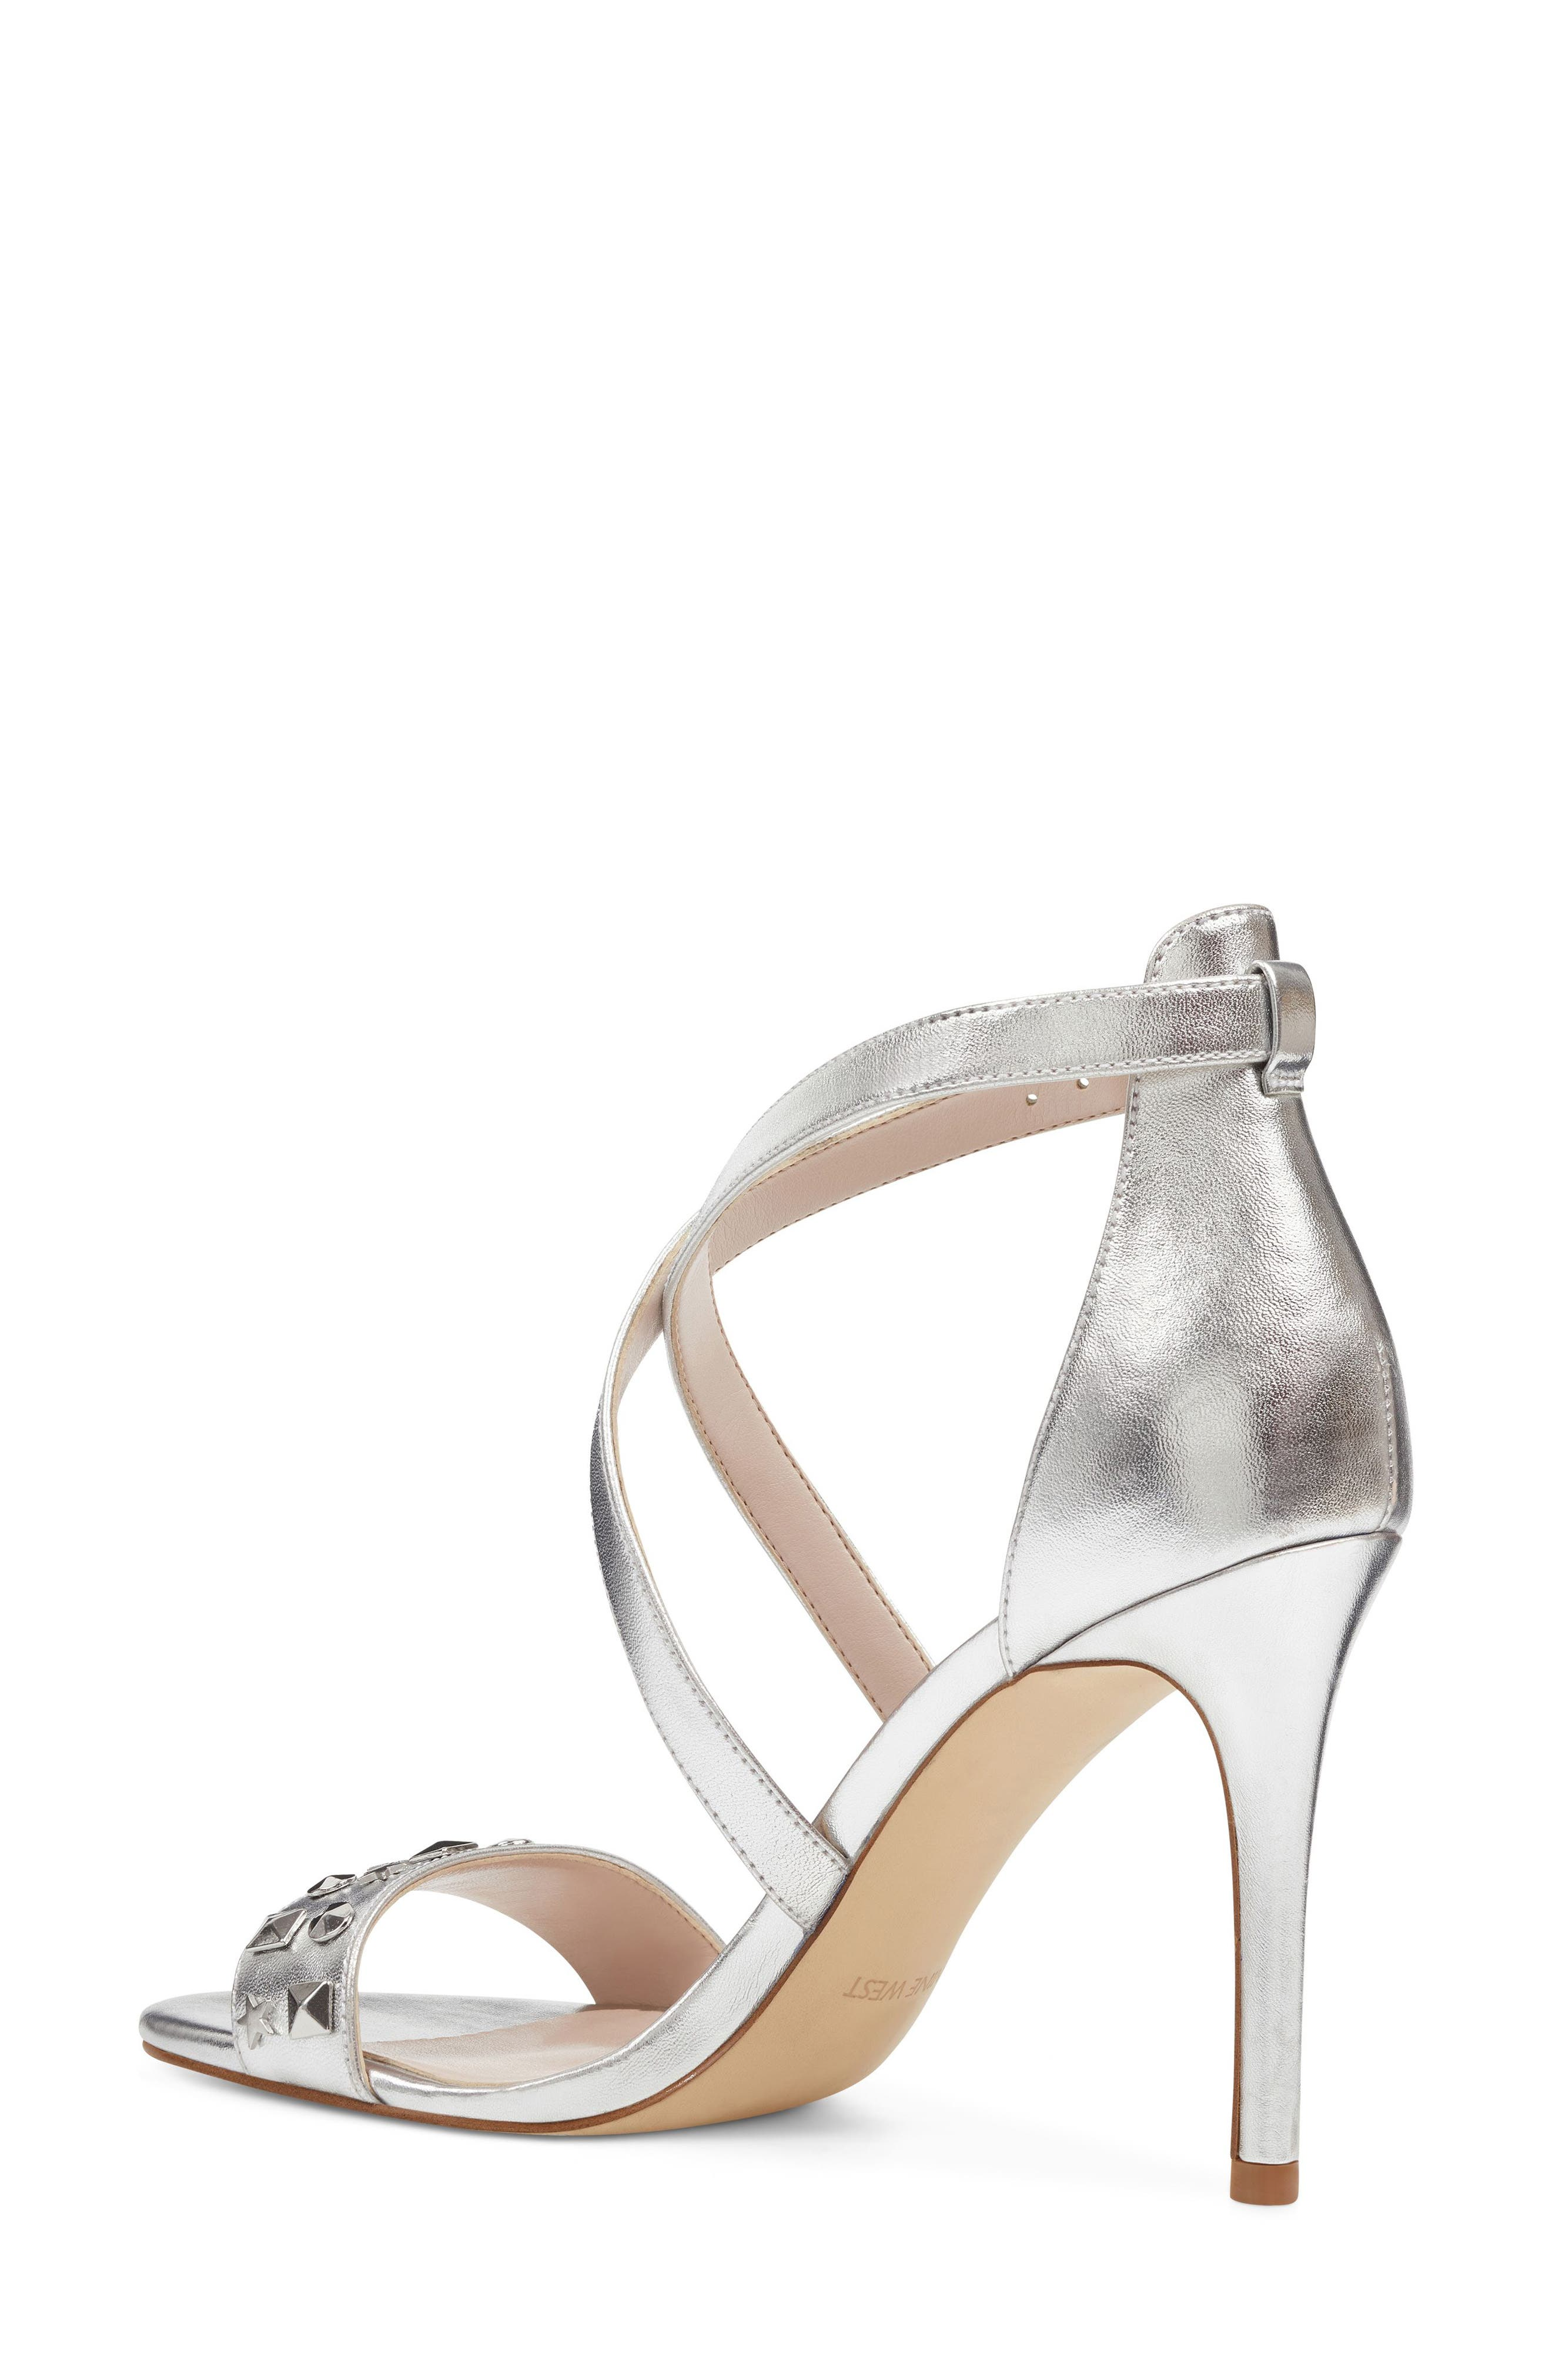 Maziany Studded Sandal,                             Alternate thumbnail 2, color,                             Silver Faux Leather